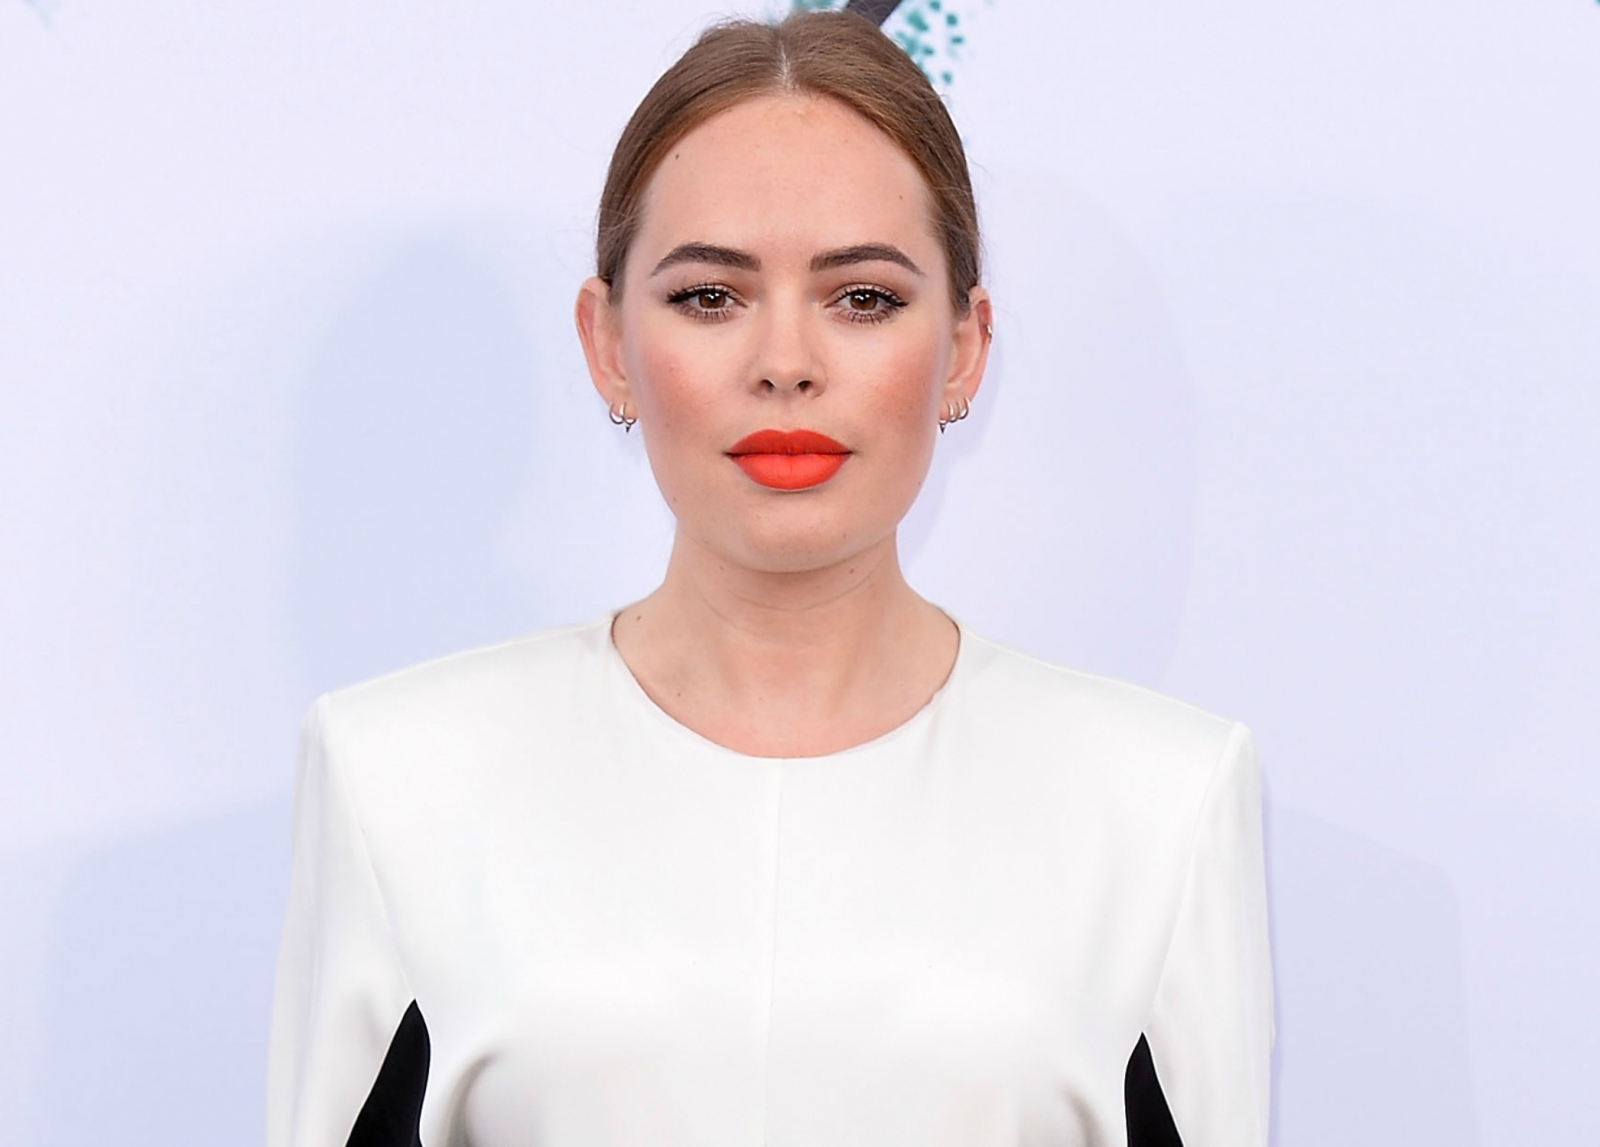 YouTube star Tanya Burr flaunts 'healthy' bikini body on Instagram: 'You're inspirational'